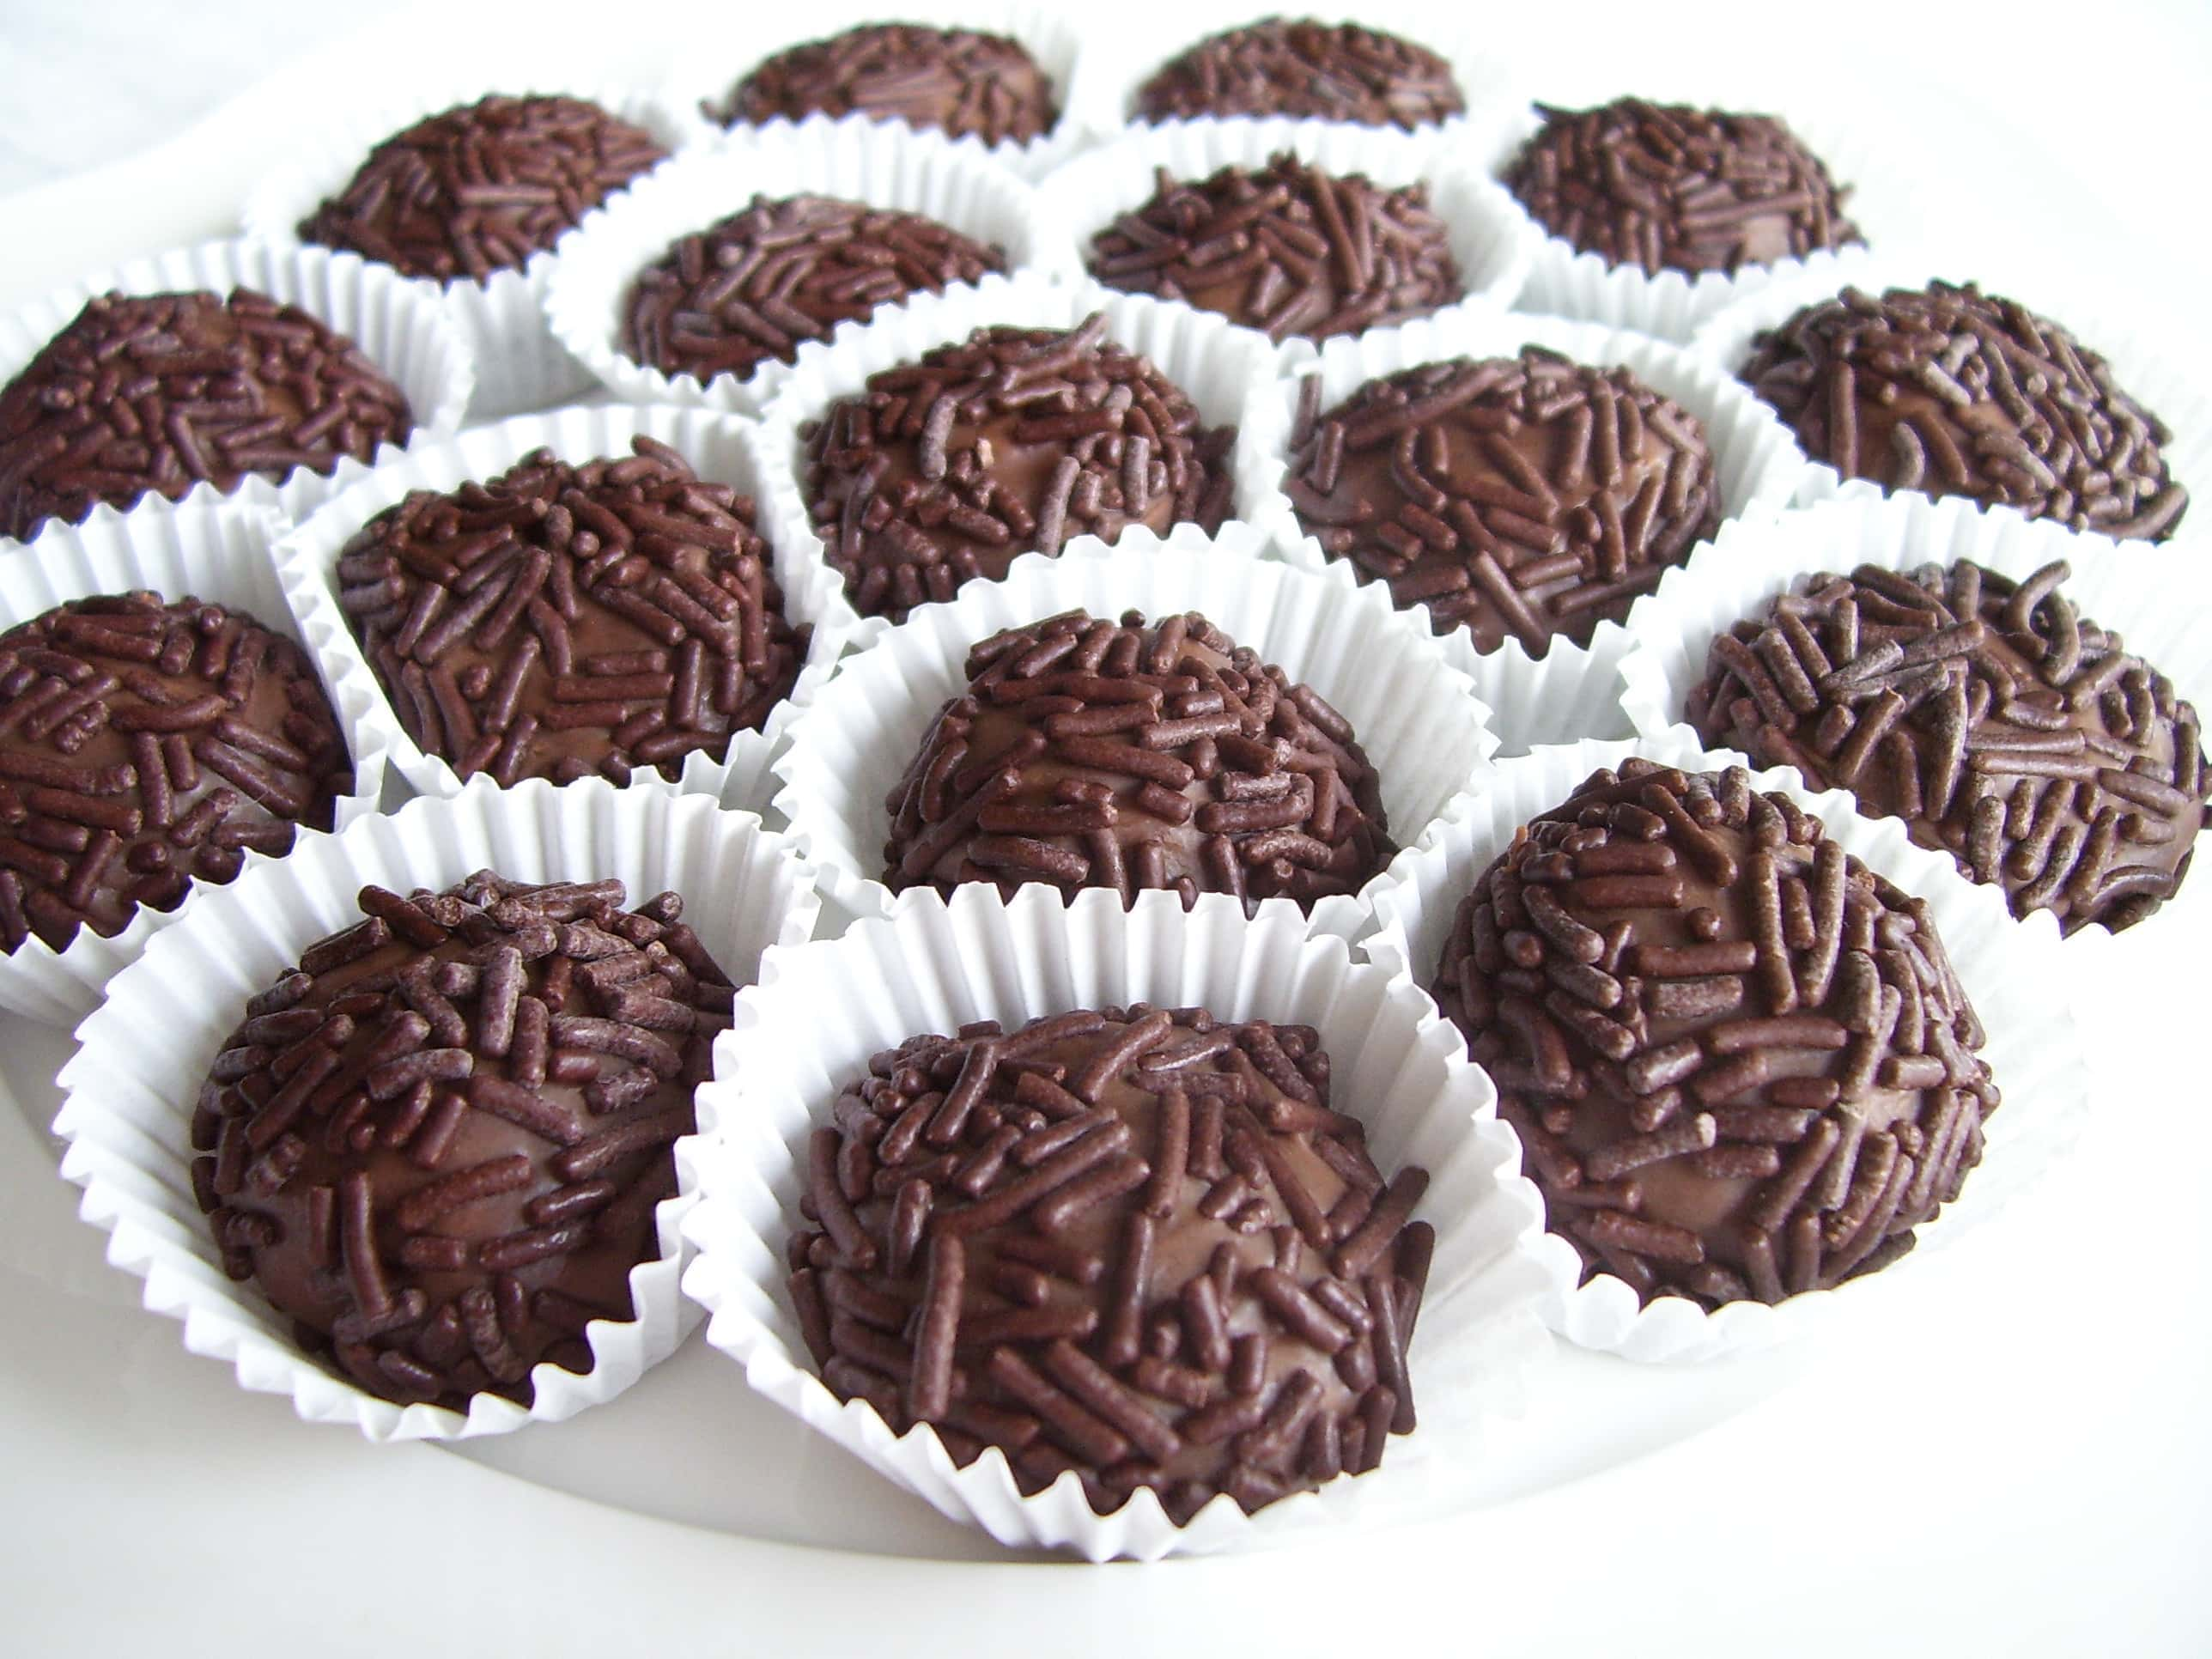 Here is my finished brigadeiro. I rolled it in cacao powder instead of ...